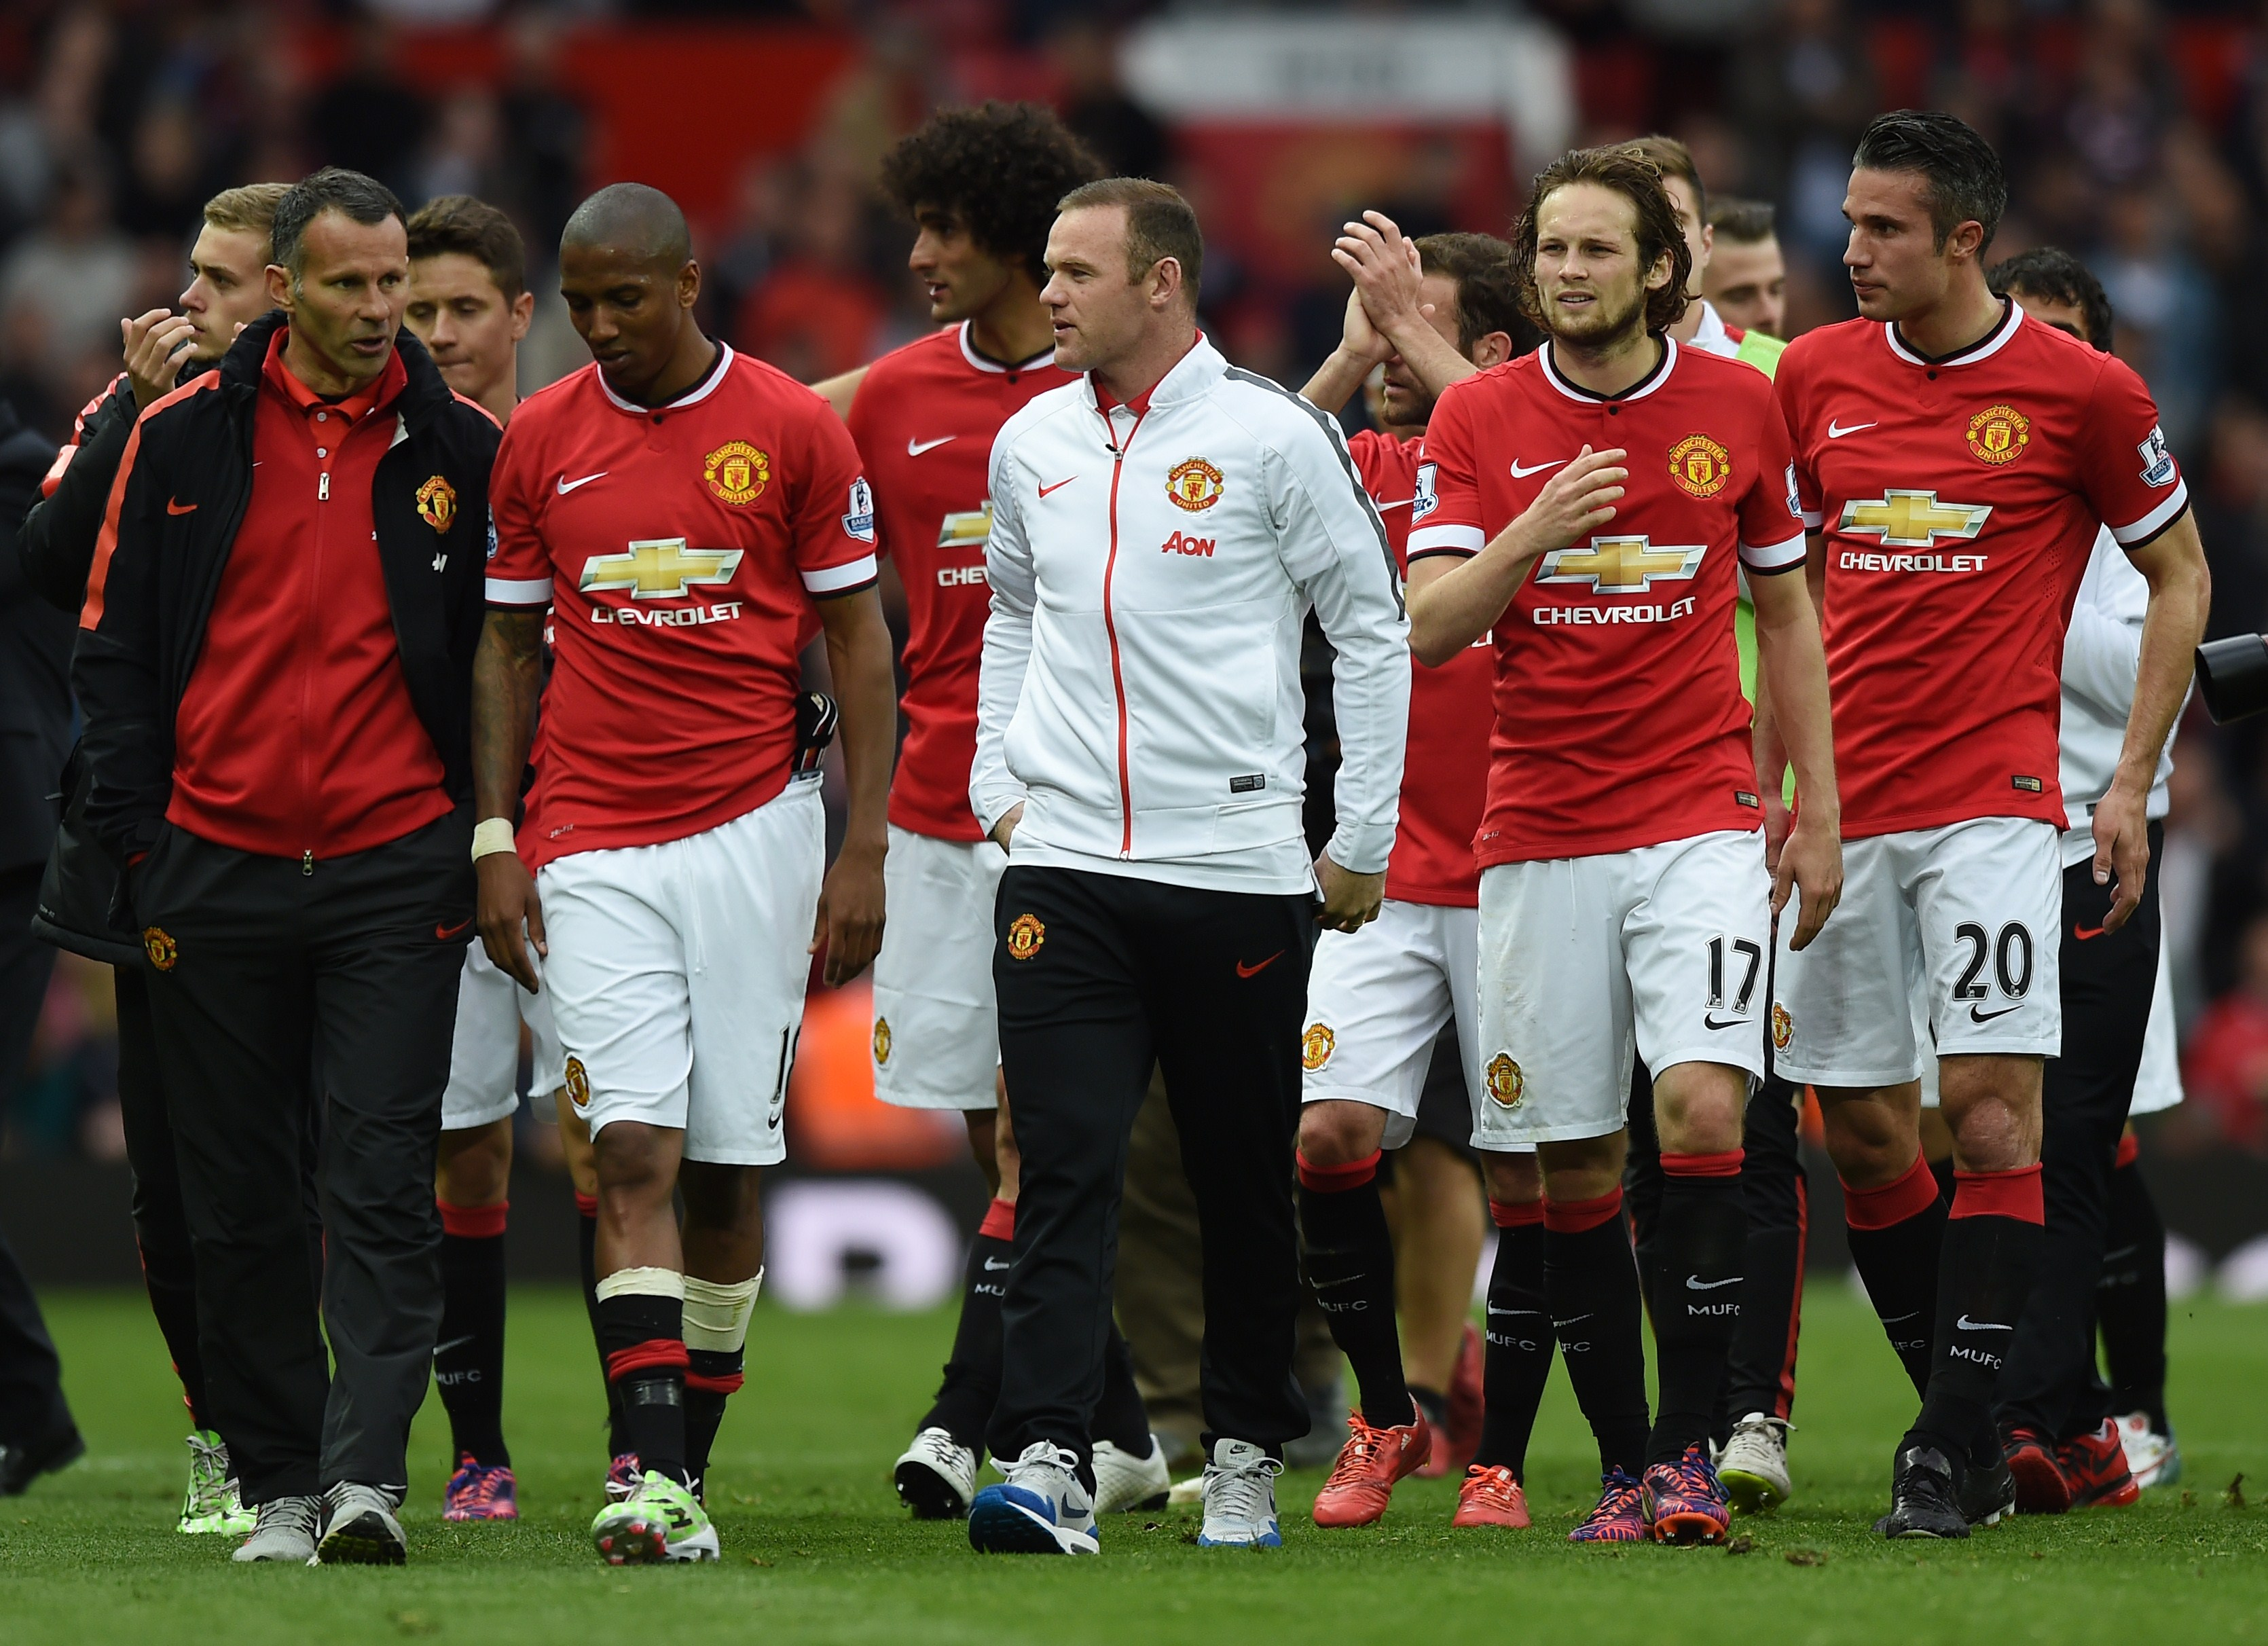 """Manchester United's English striker Wayne Rooney (C) walks on the pitch with teammates after the English Premier League football match between Manchester United and Arsenal at Old Trafford in Manchester, northwest England, on May 17, 2015. AFP PHOTO / PAUL ELLIS RESTRICTED TO EDITORIAL USE. No use with unauthorized audio, video, data, fixture lists, club/league logos or """"live"""" services. Online in-match use limited to 45 images, no video emulation. No use in betting, games or single club/league/player publications"""